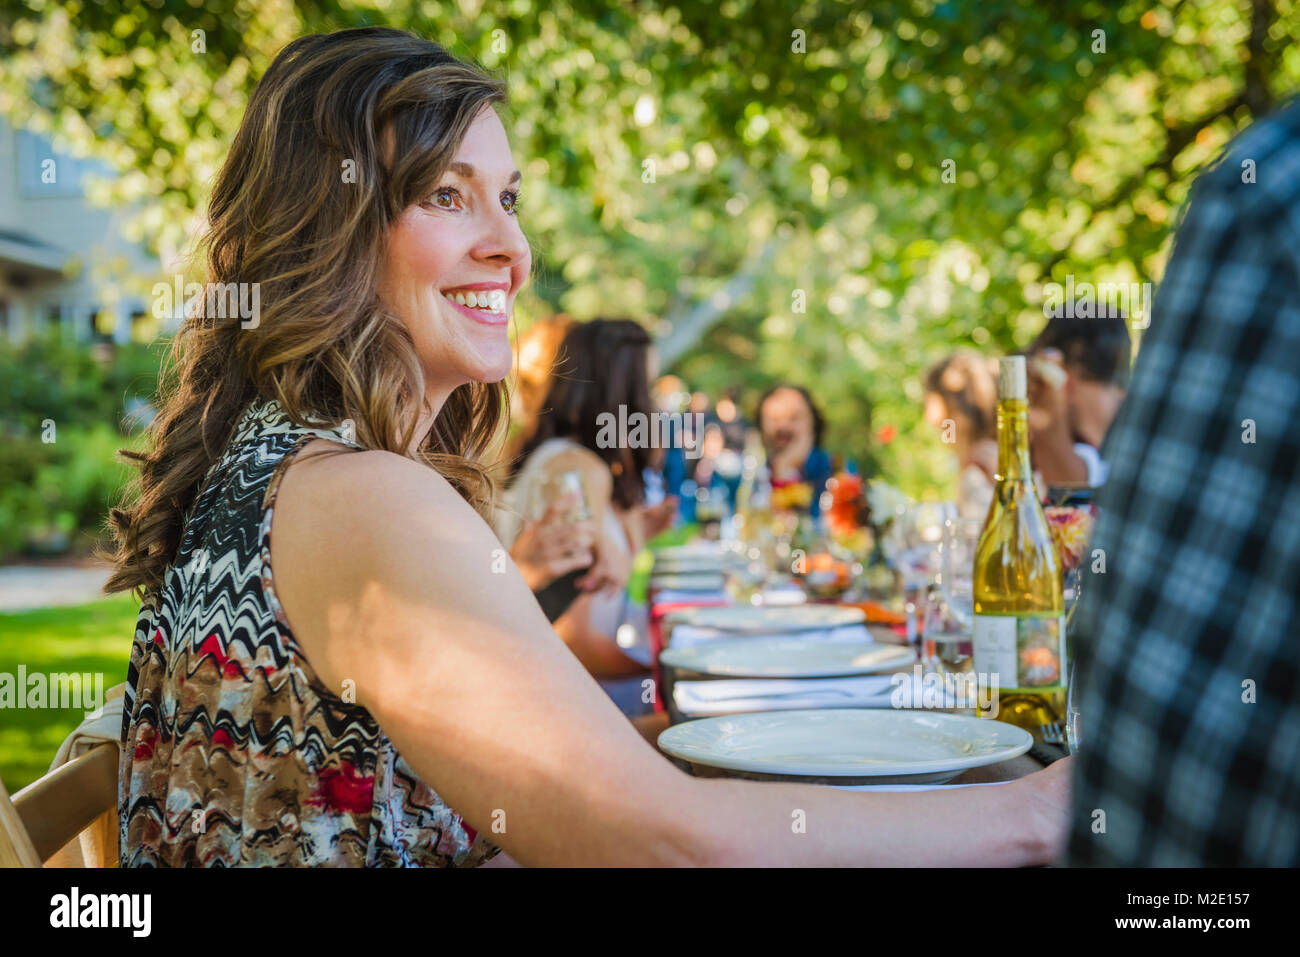 Portrait of smiling Caucasian woman sitting at table at party outdoors - Stock Image